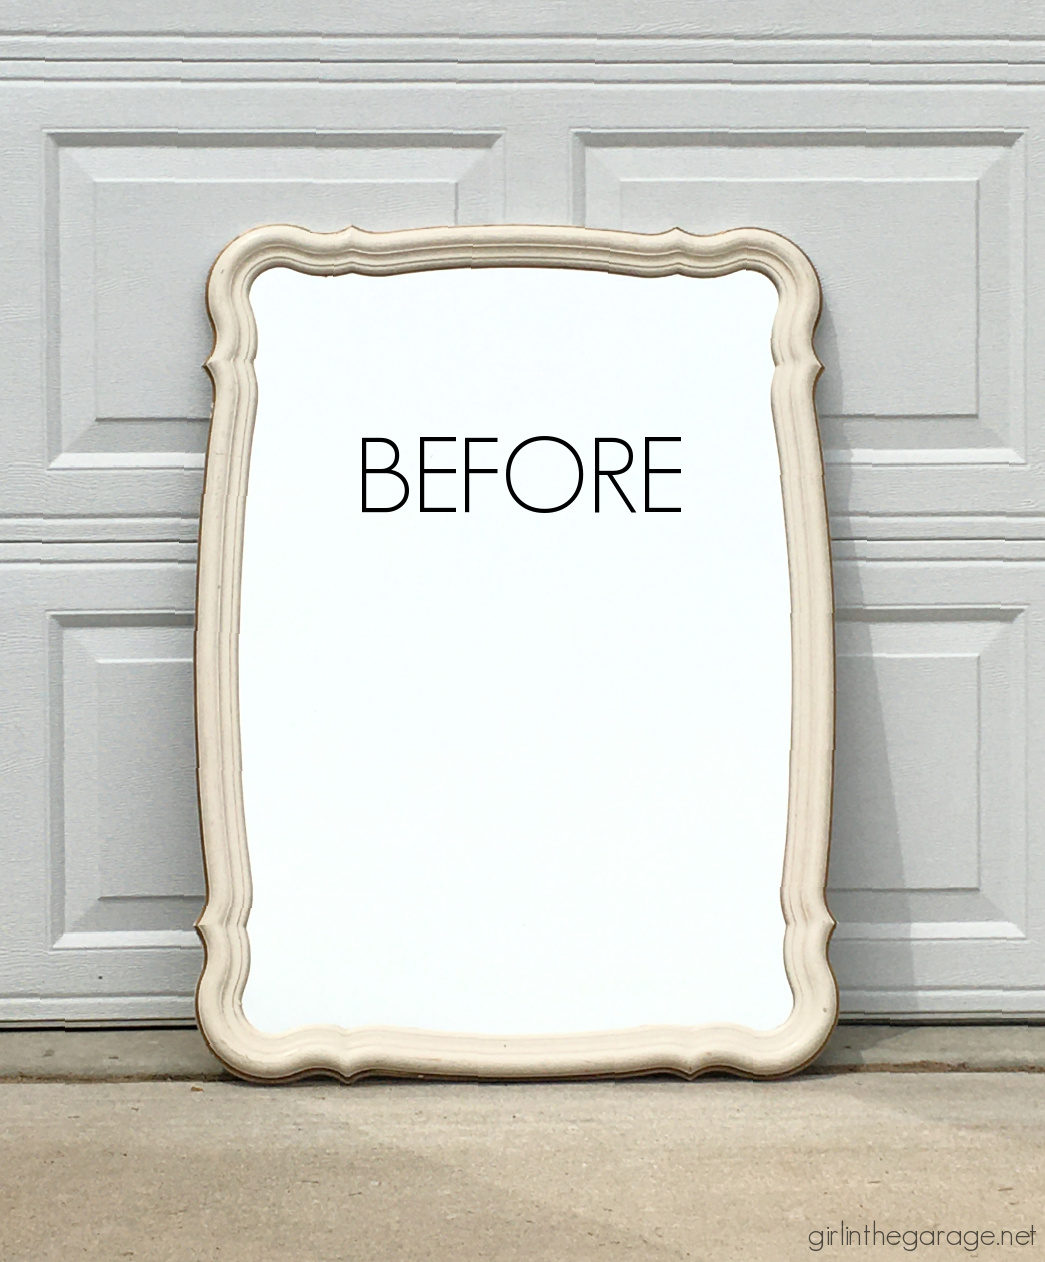 Before: Learn how to upcycle a vintage mirror into gorgeous French style decor. Easy and thrifty DIY decor idea by Girl in the Garage.